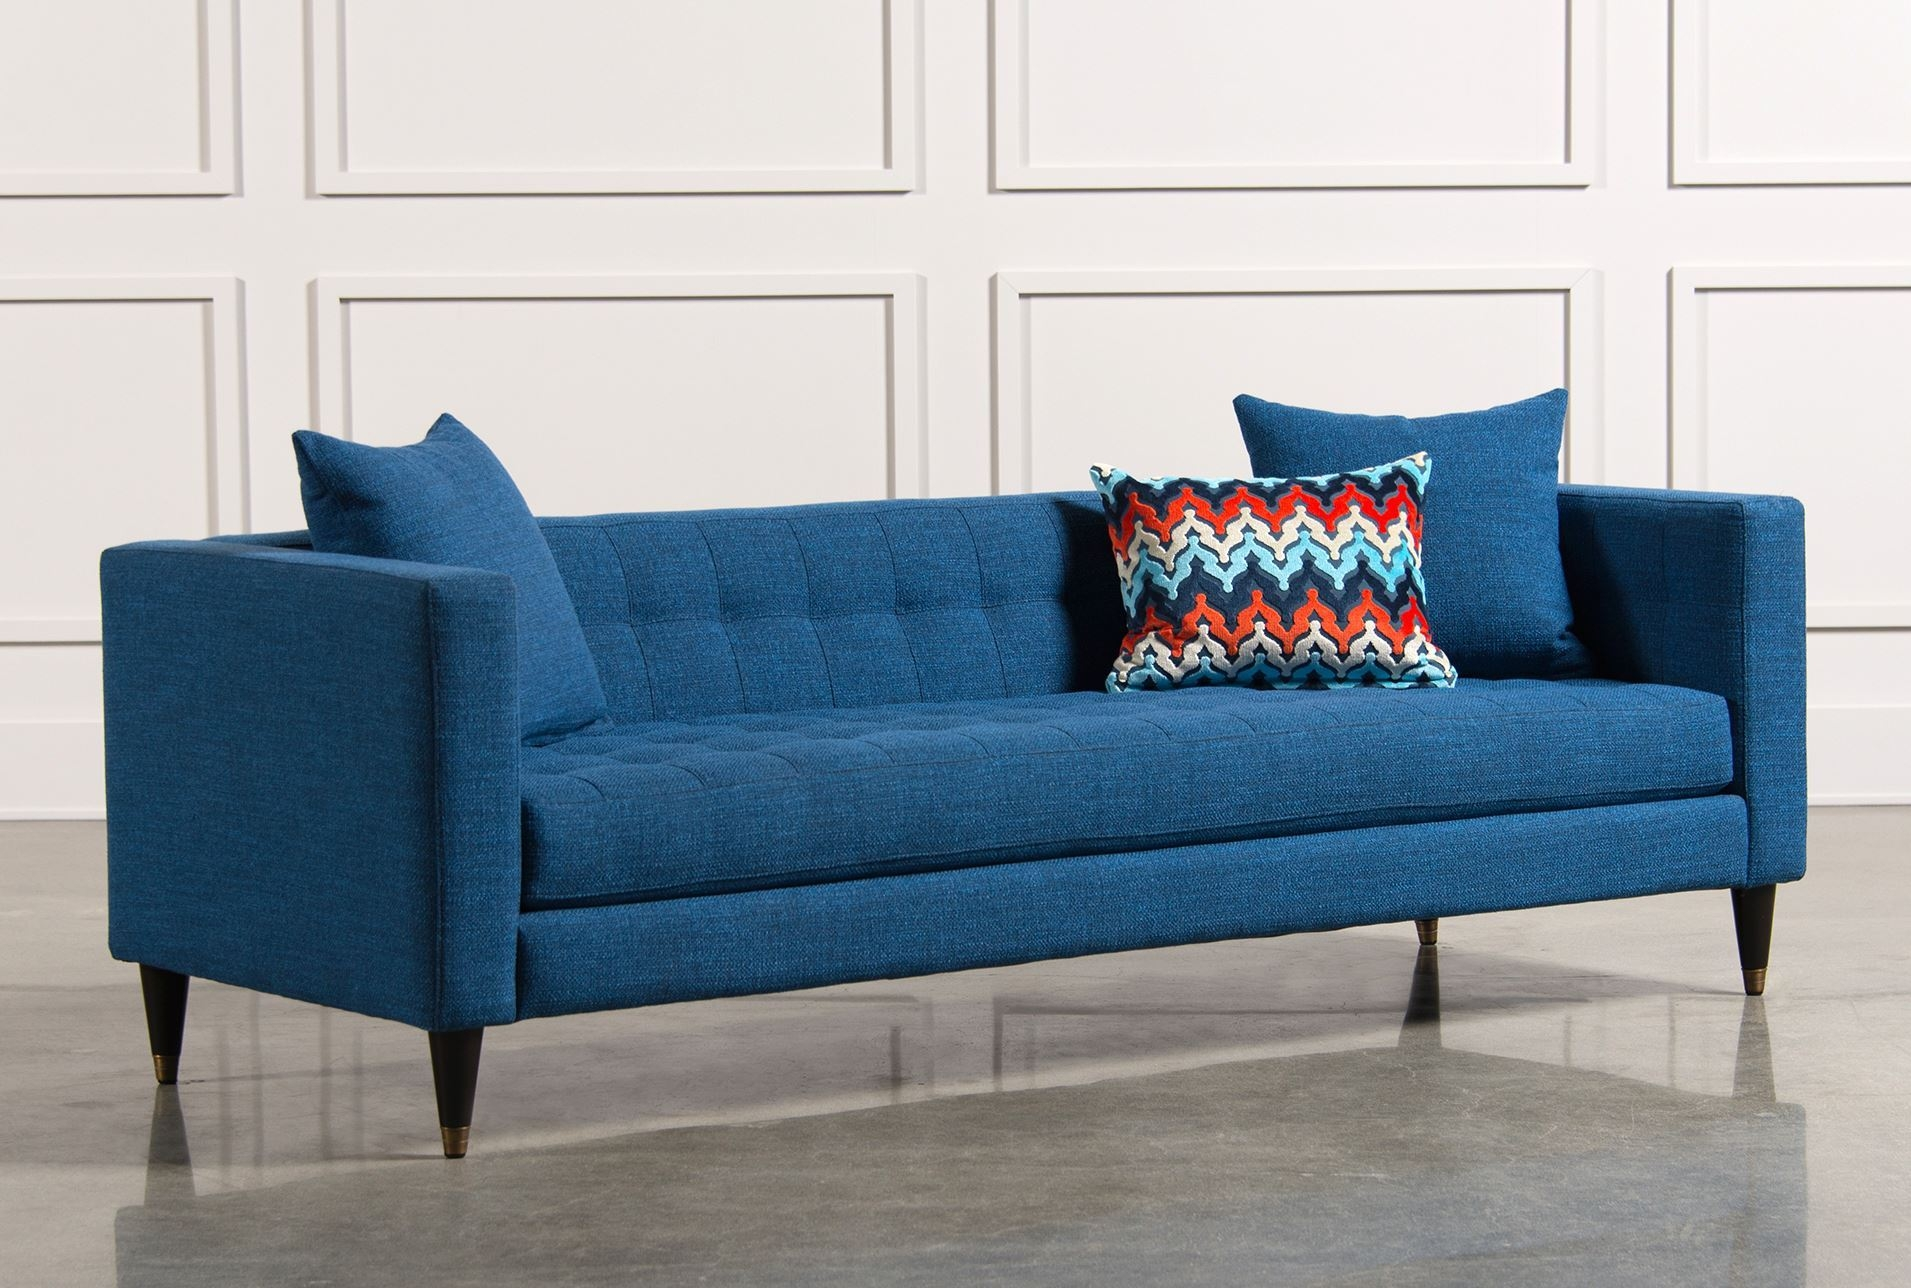 Inspirational Fabric Sofas 32 With Additional Office Sofa Ideas Regarding Fabric Sofas (Image 11 of 15)